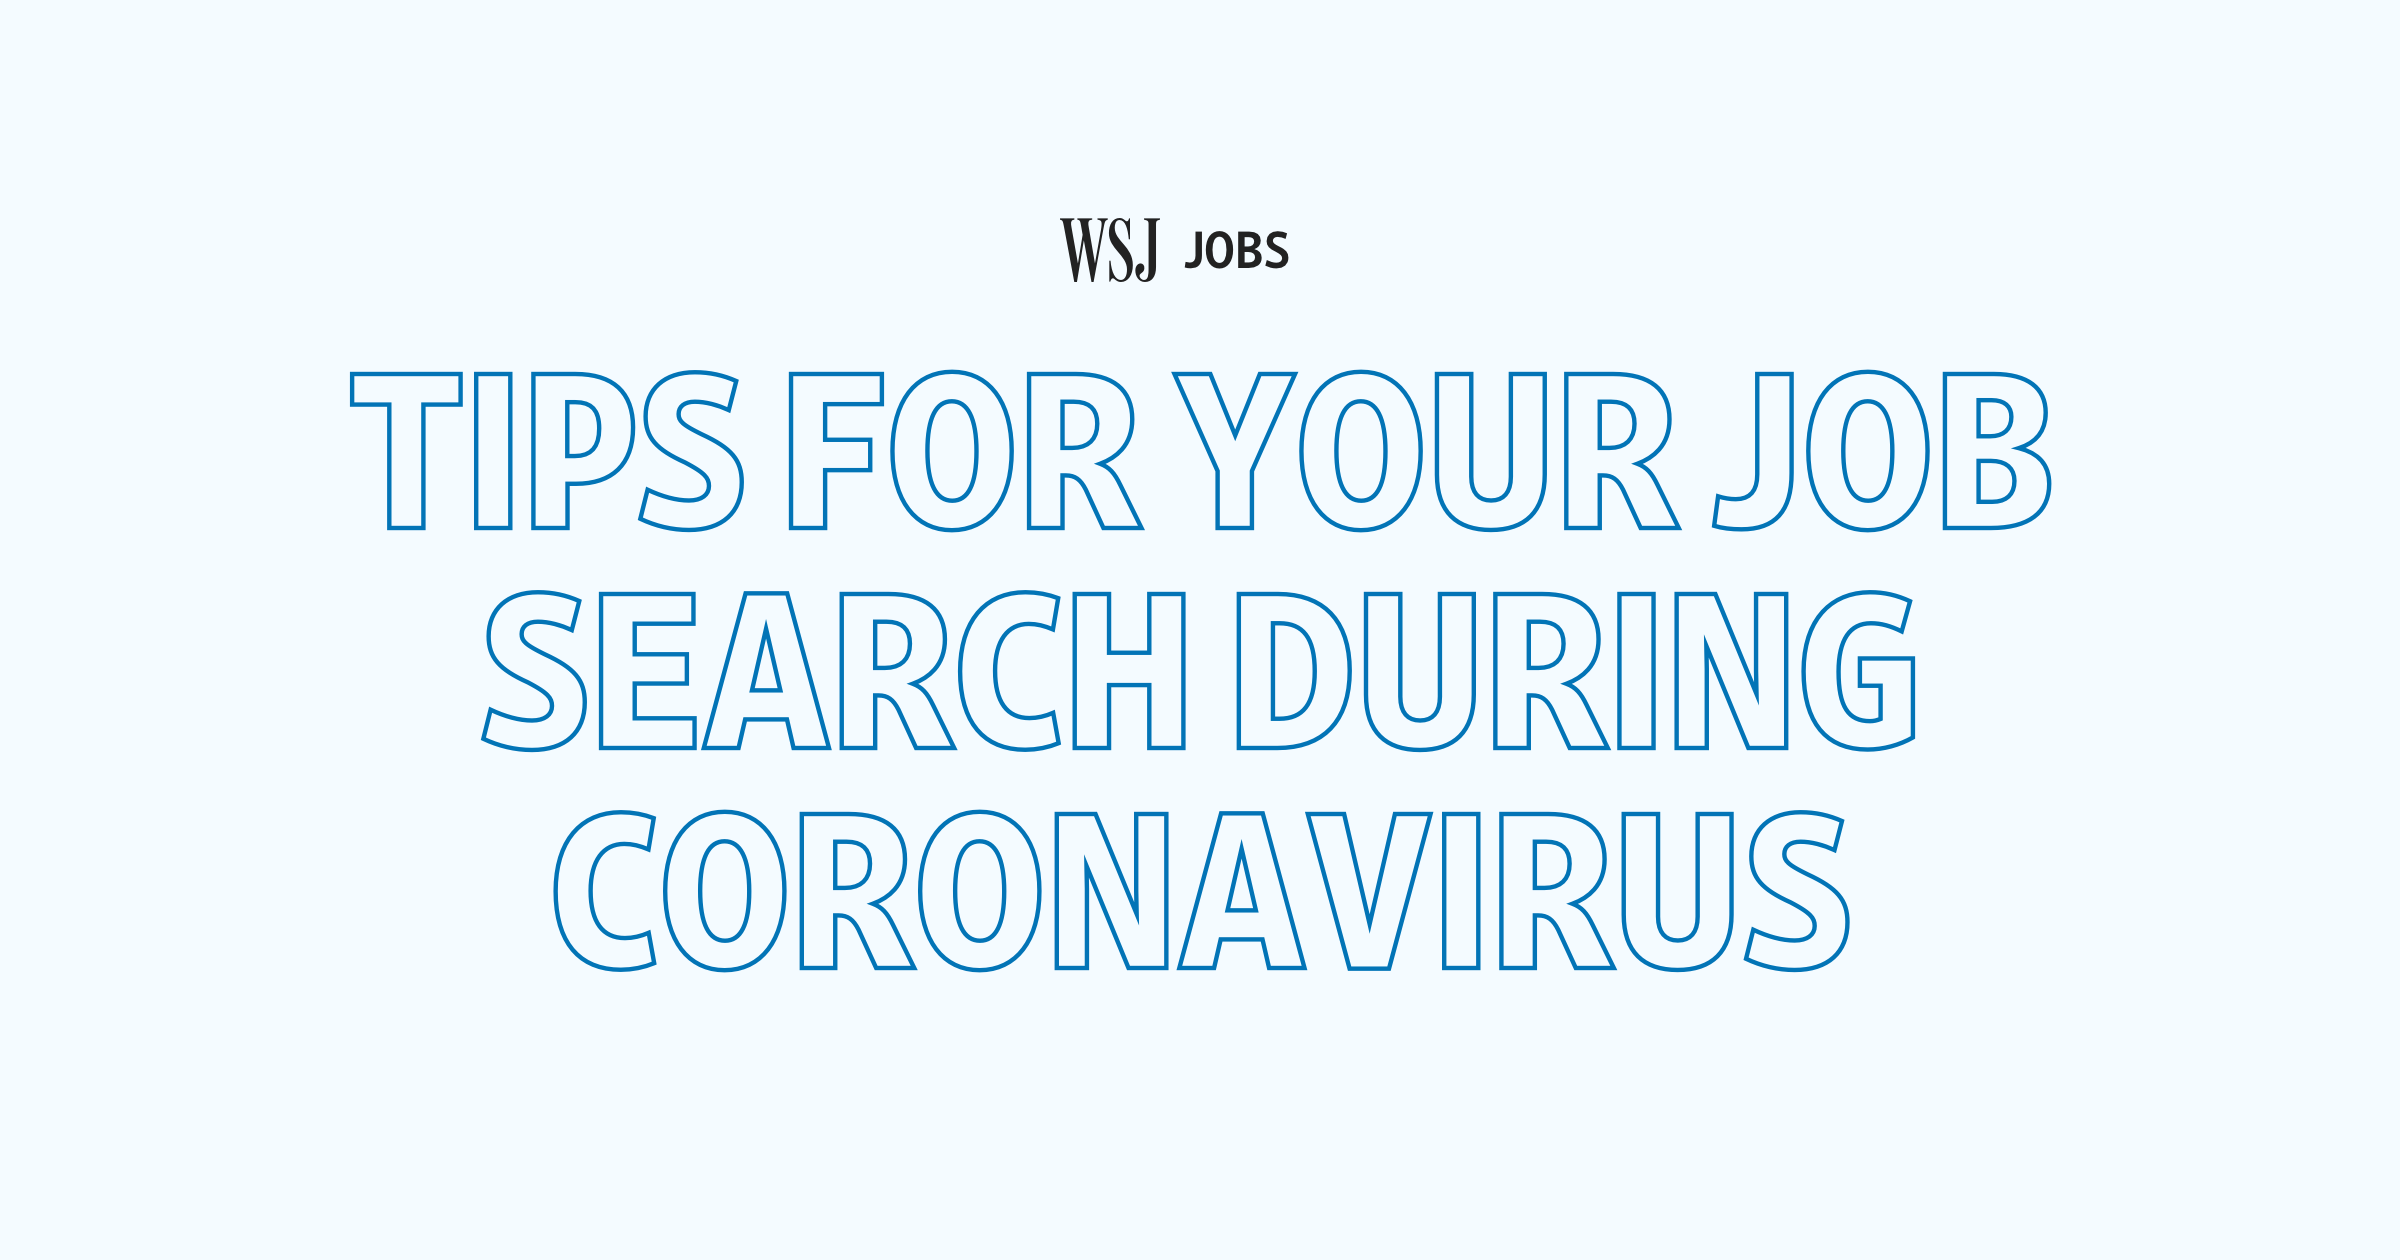 WSJ Jobs: Tips For Your Job Search During Coronavirus.